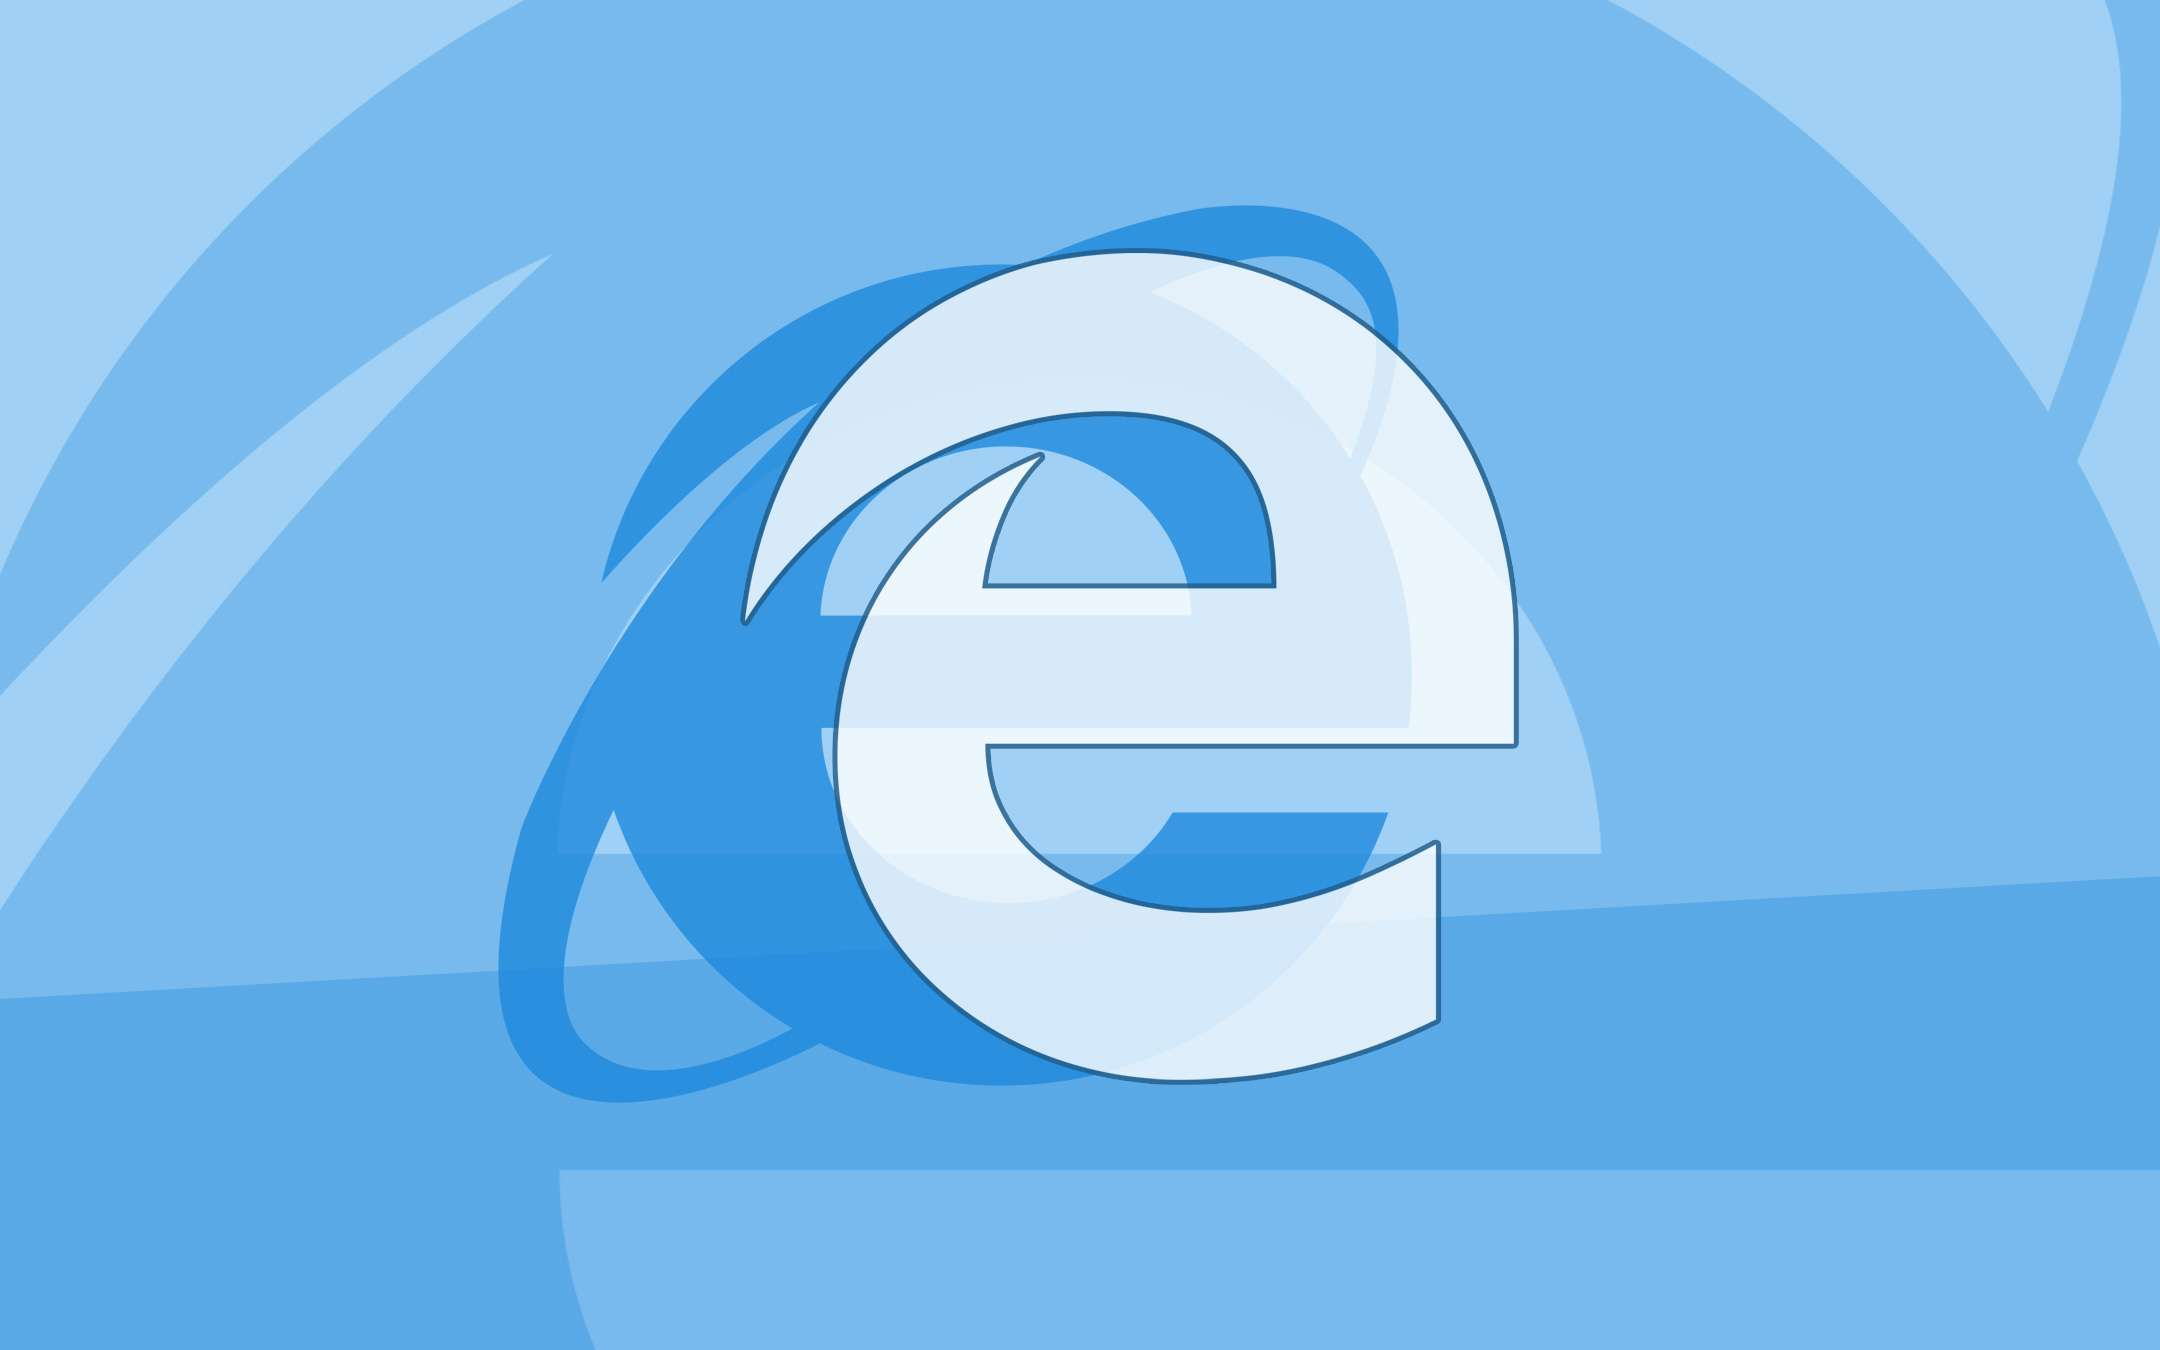 Internet Explorer and automatic redirect in Edge